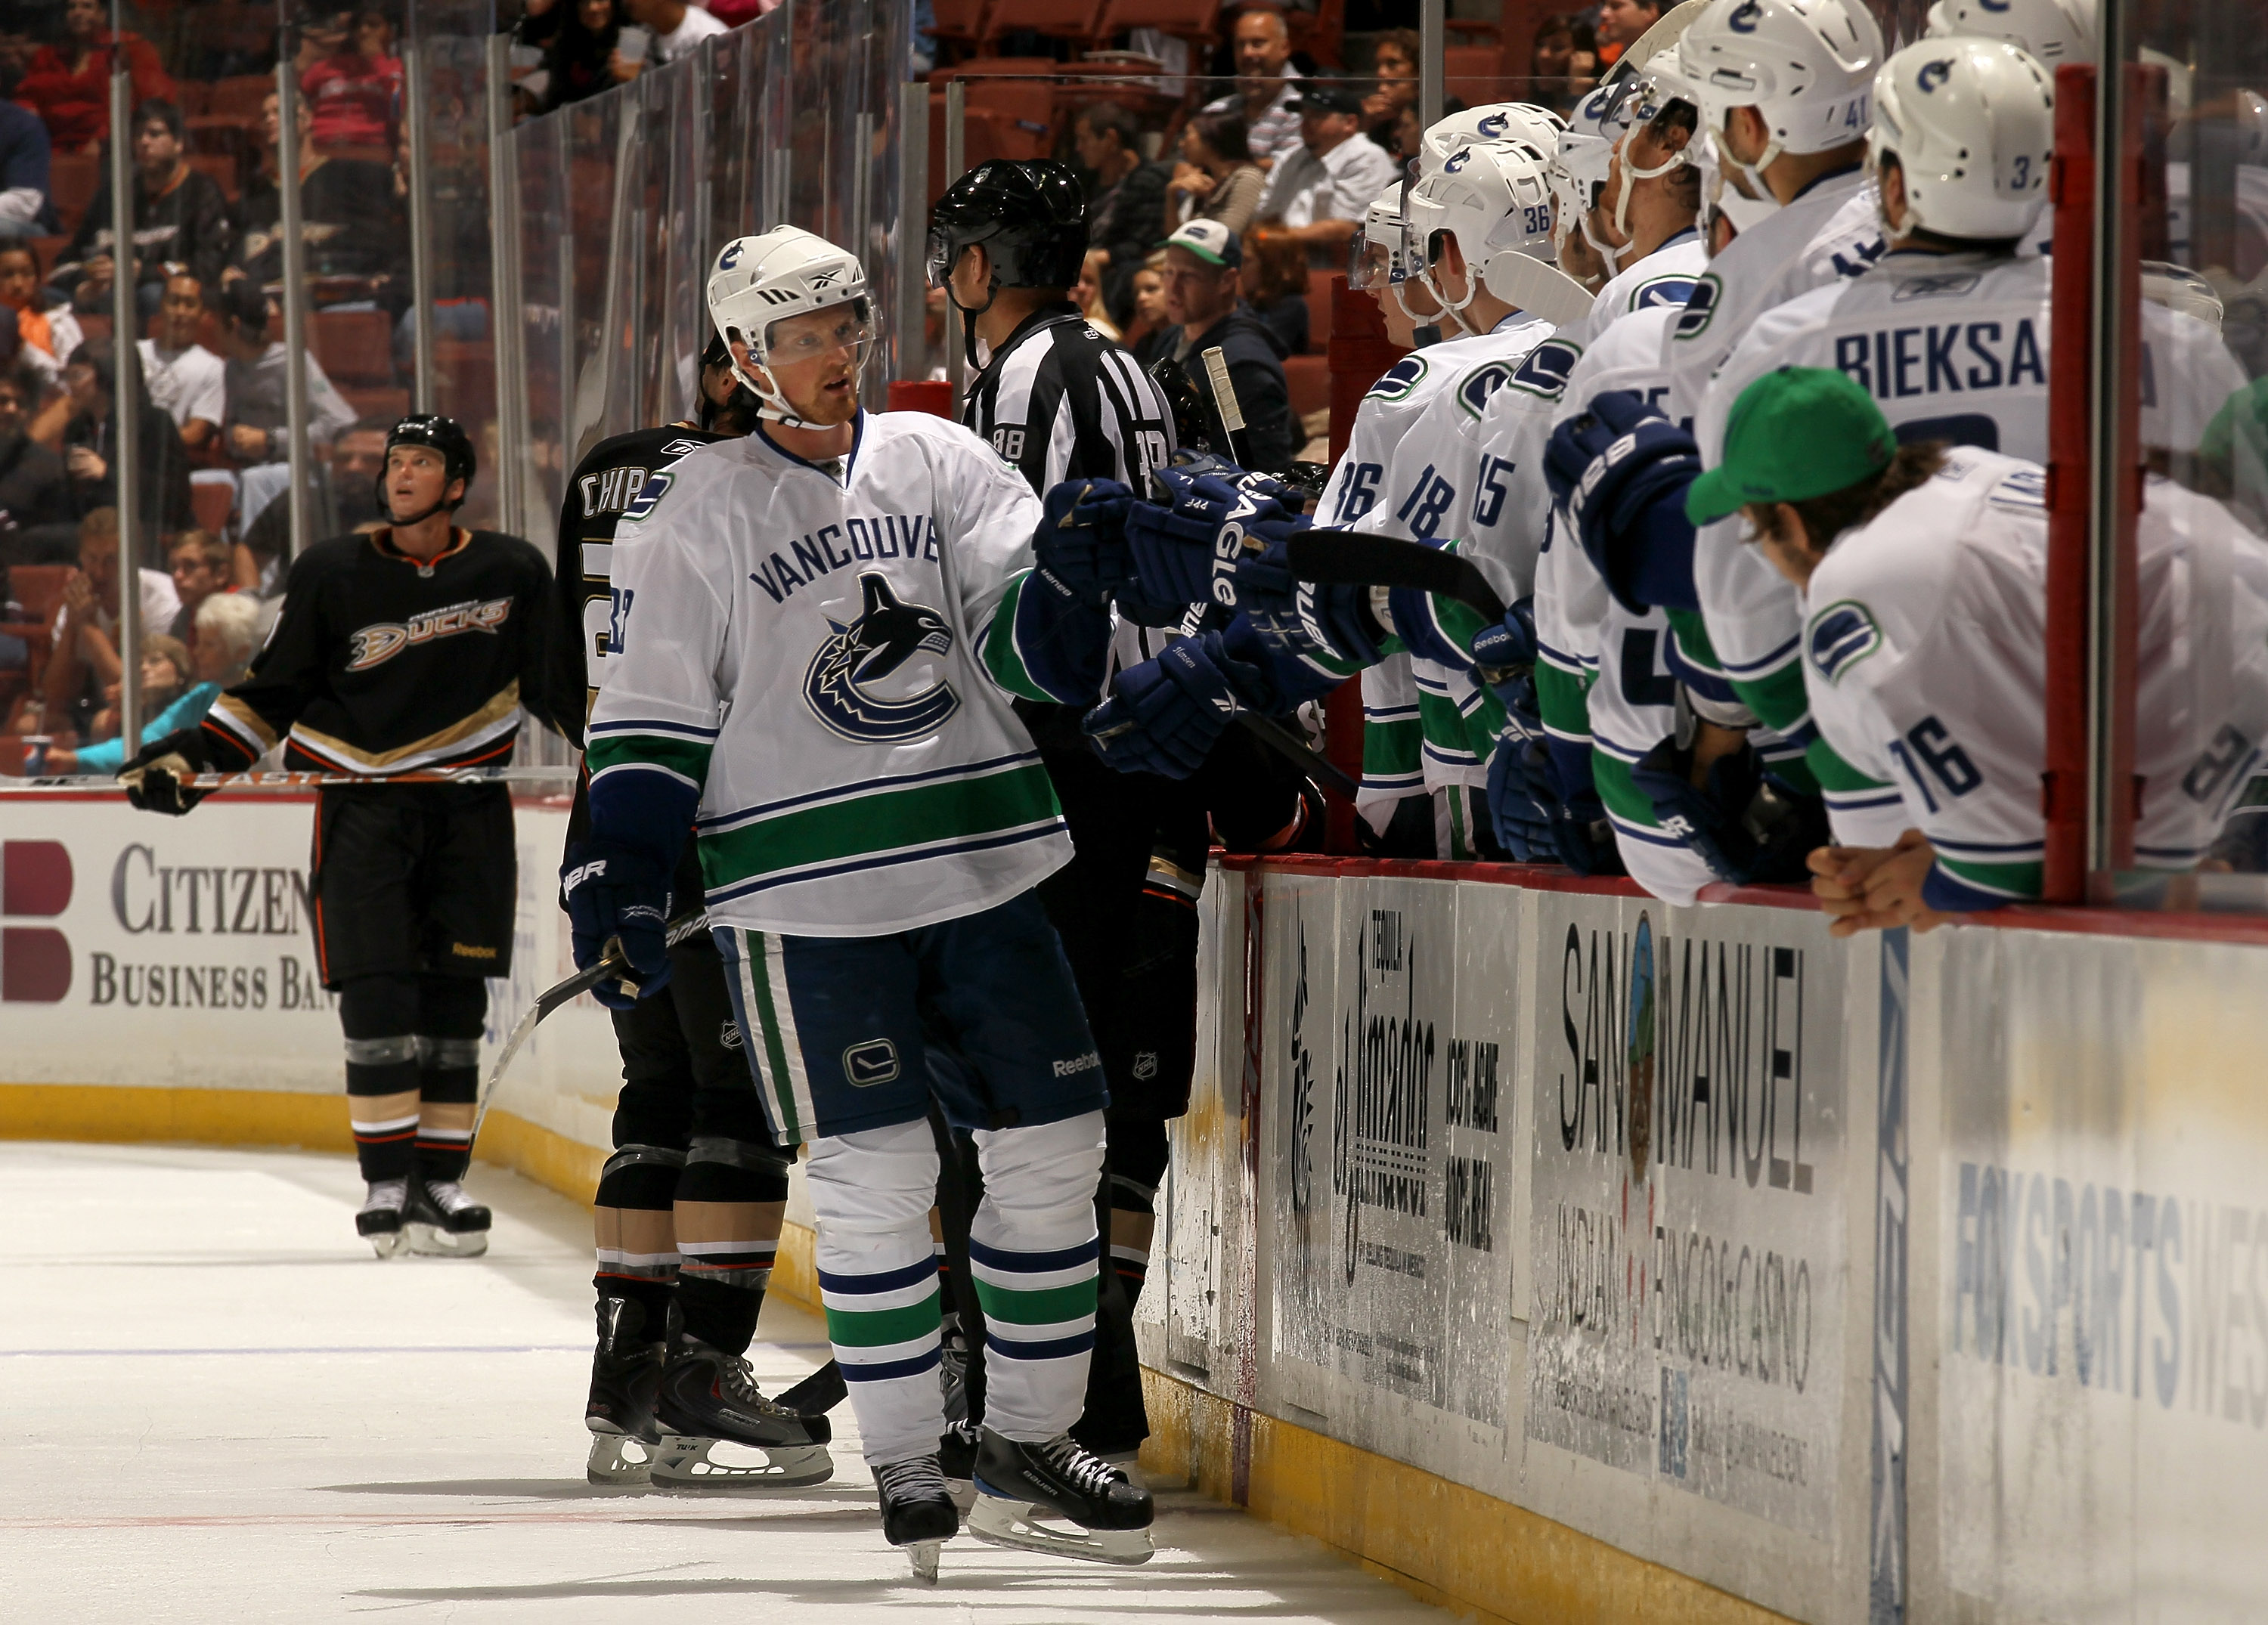 ANAHEIM, CA - OCTOBER 1:  Henrik Sedin #33 of the Vancouver Canucks  skates by the bench after scoring the go ahead goal in the third period against the Anaheim Ducks at Honda Center on October 1, 2010 in Anaheim, California.  Vancouver won 4-2.  (Photo b